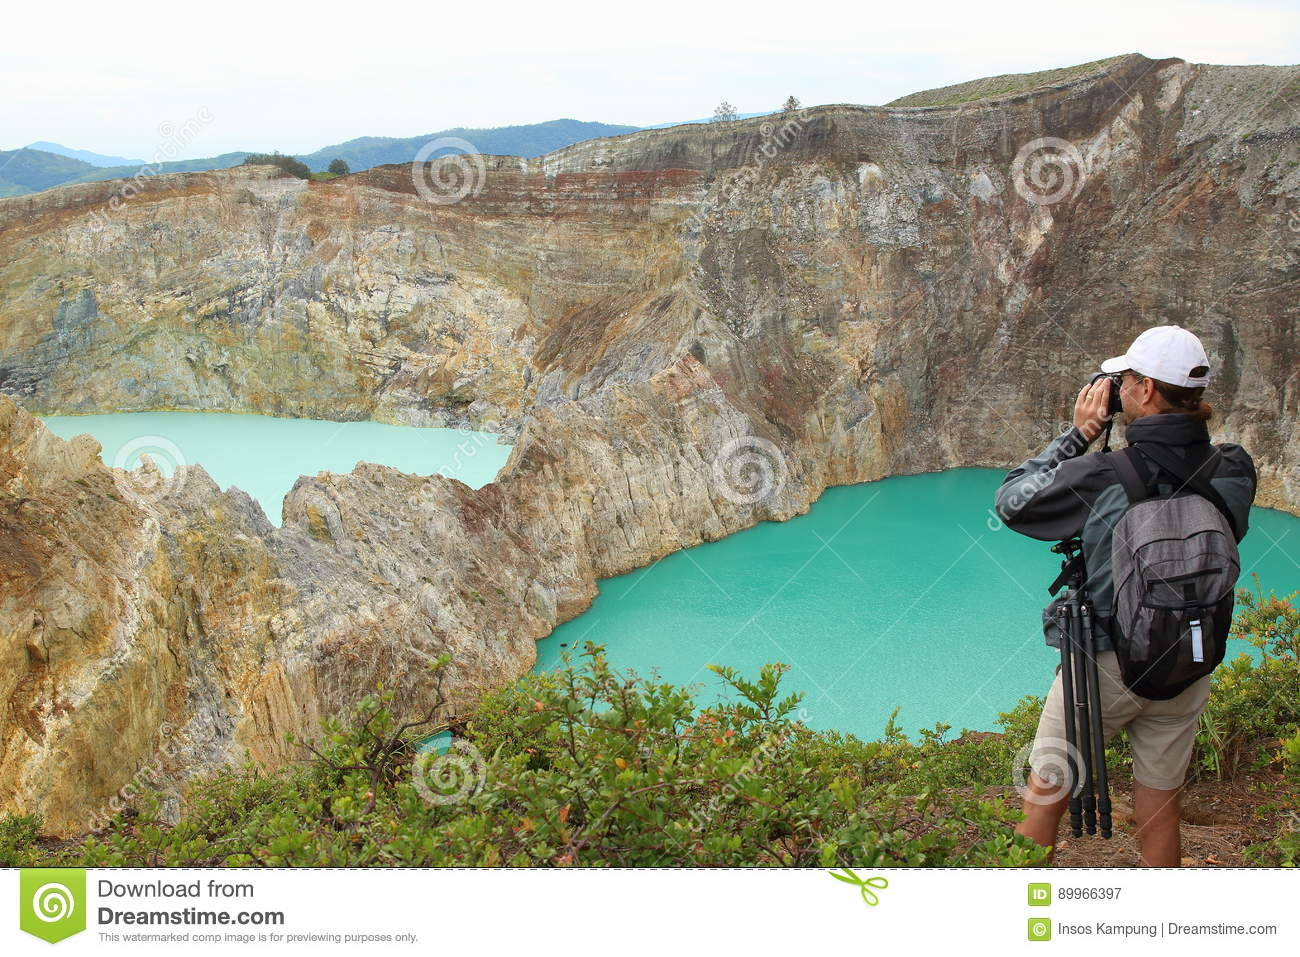 Photographing the Kelimutu Crater Lakes